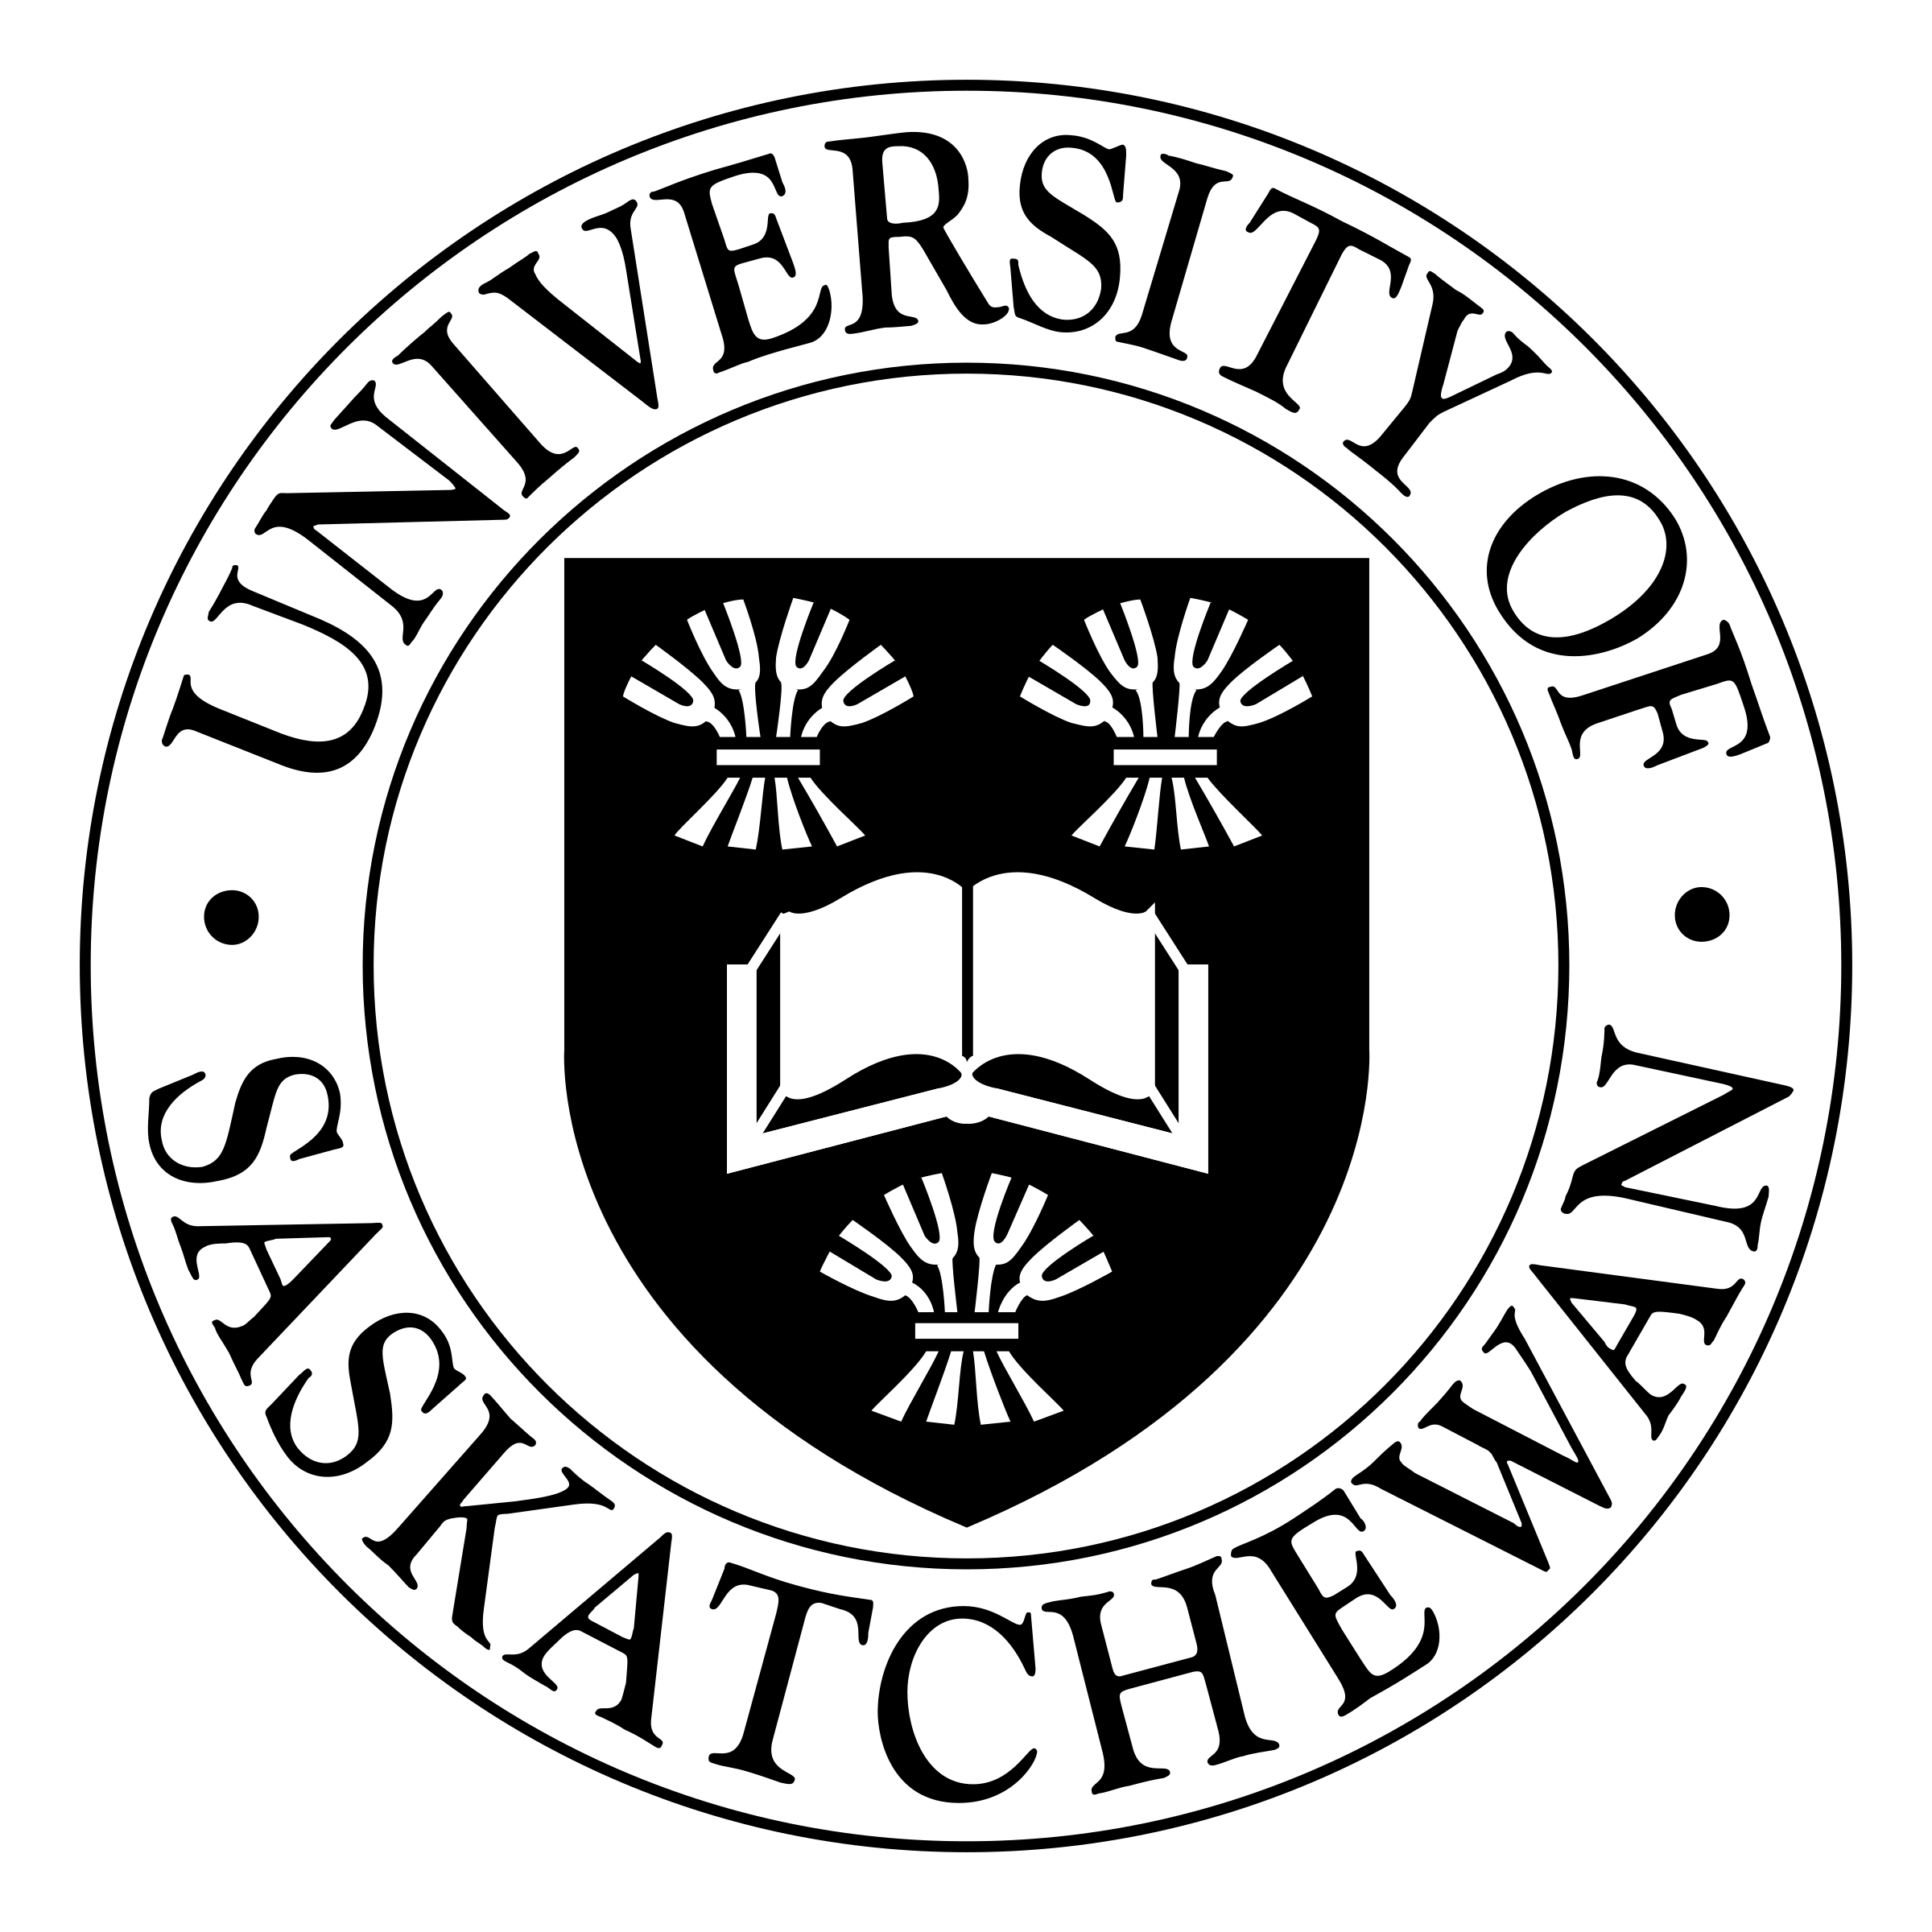 University of Saskatchewan logo